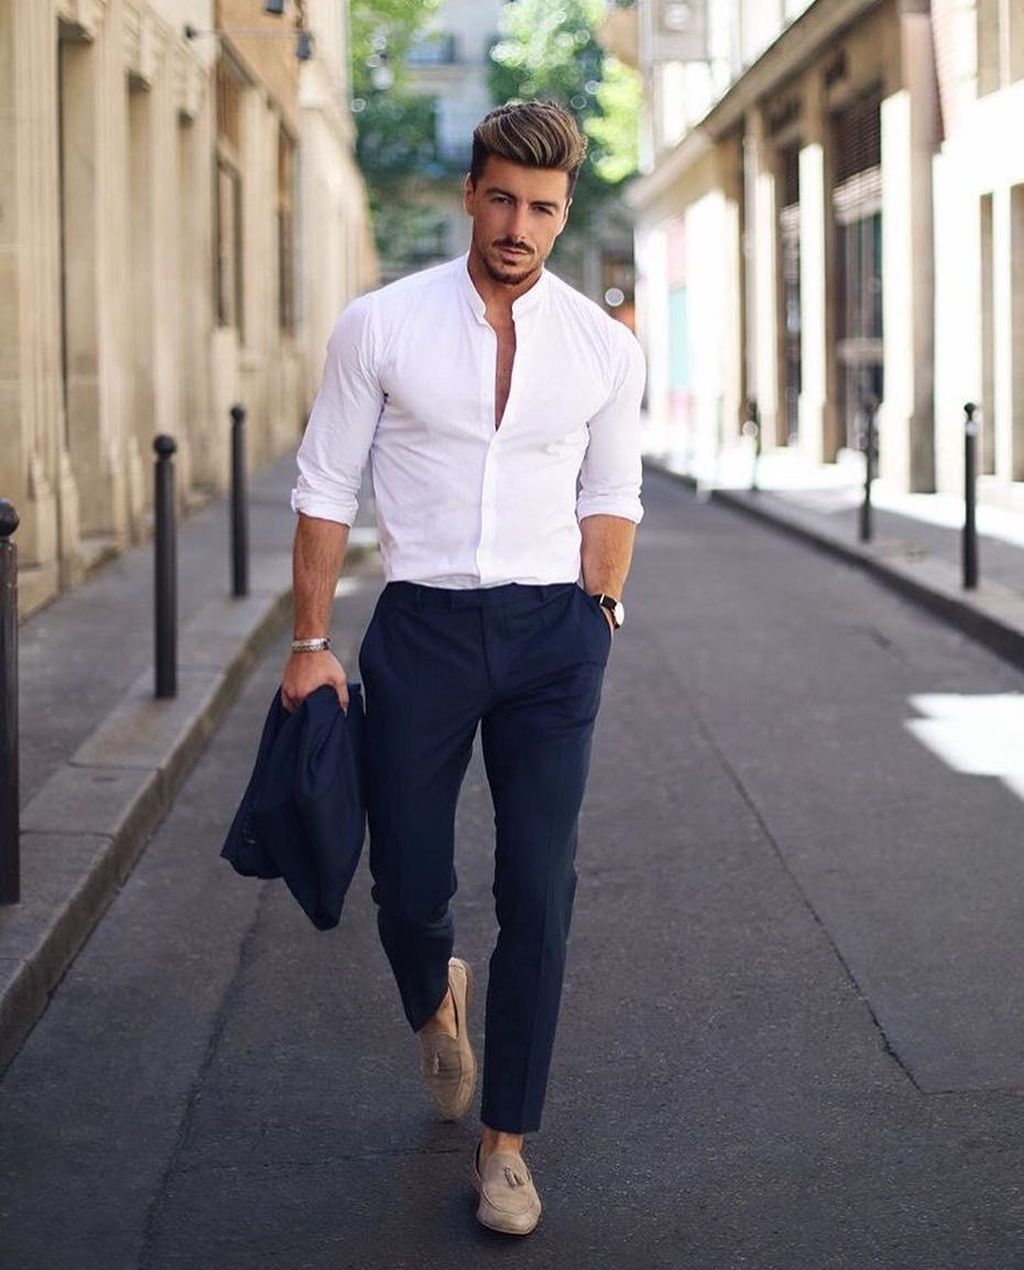 On Trend And Elegant Looks For: 40 Magnificient Men Fashion Ideas To Look Elegant